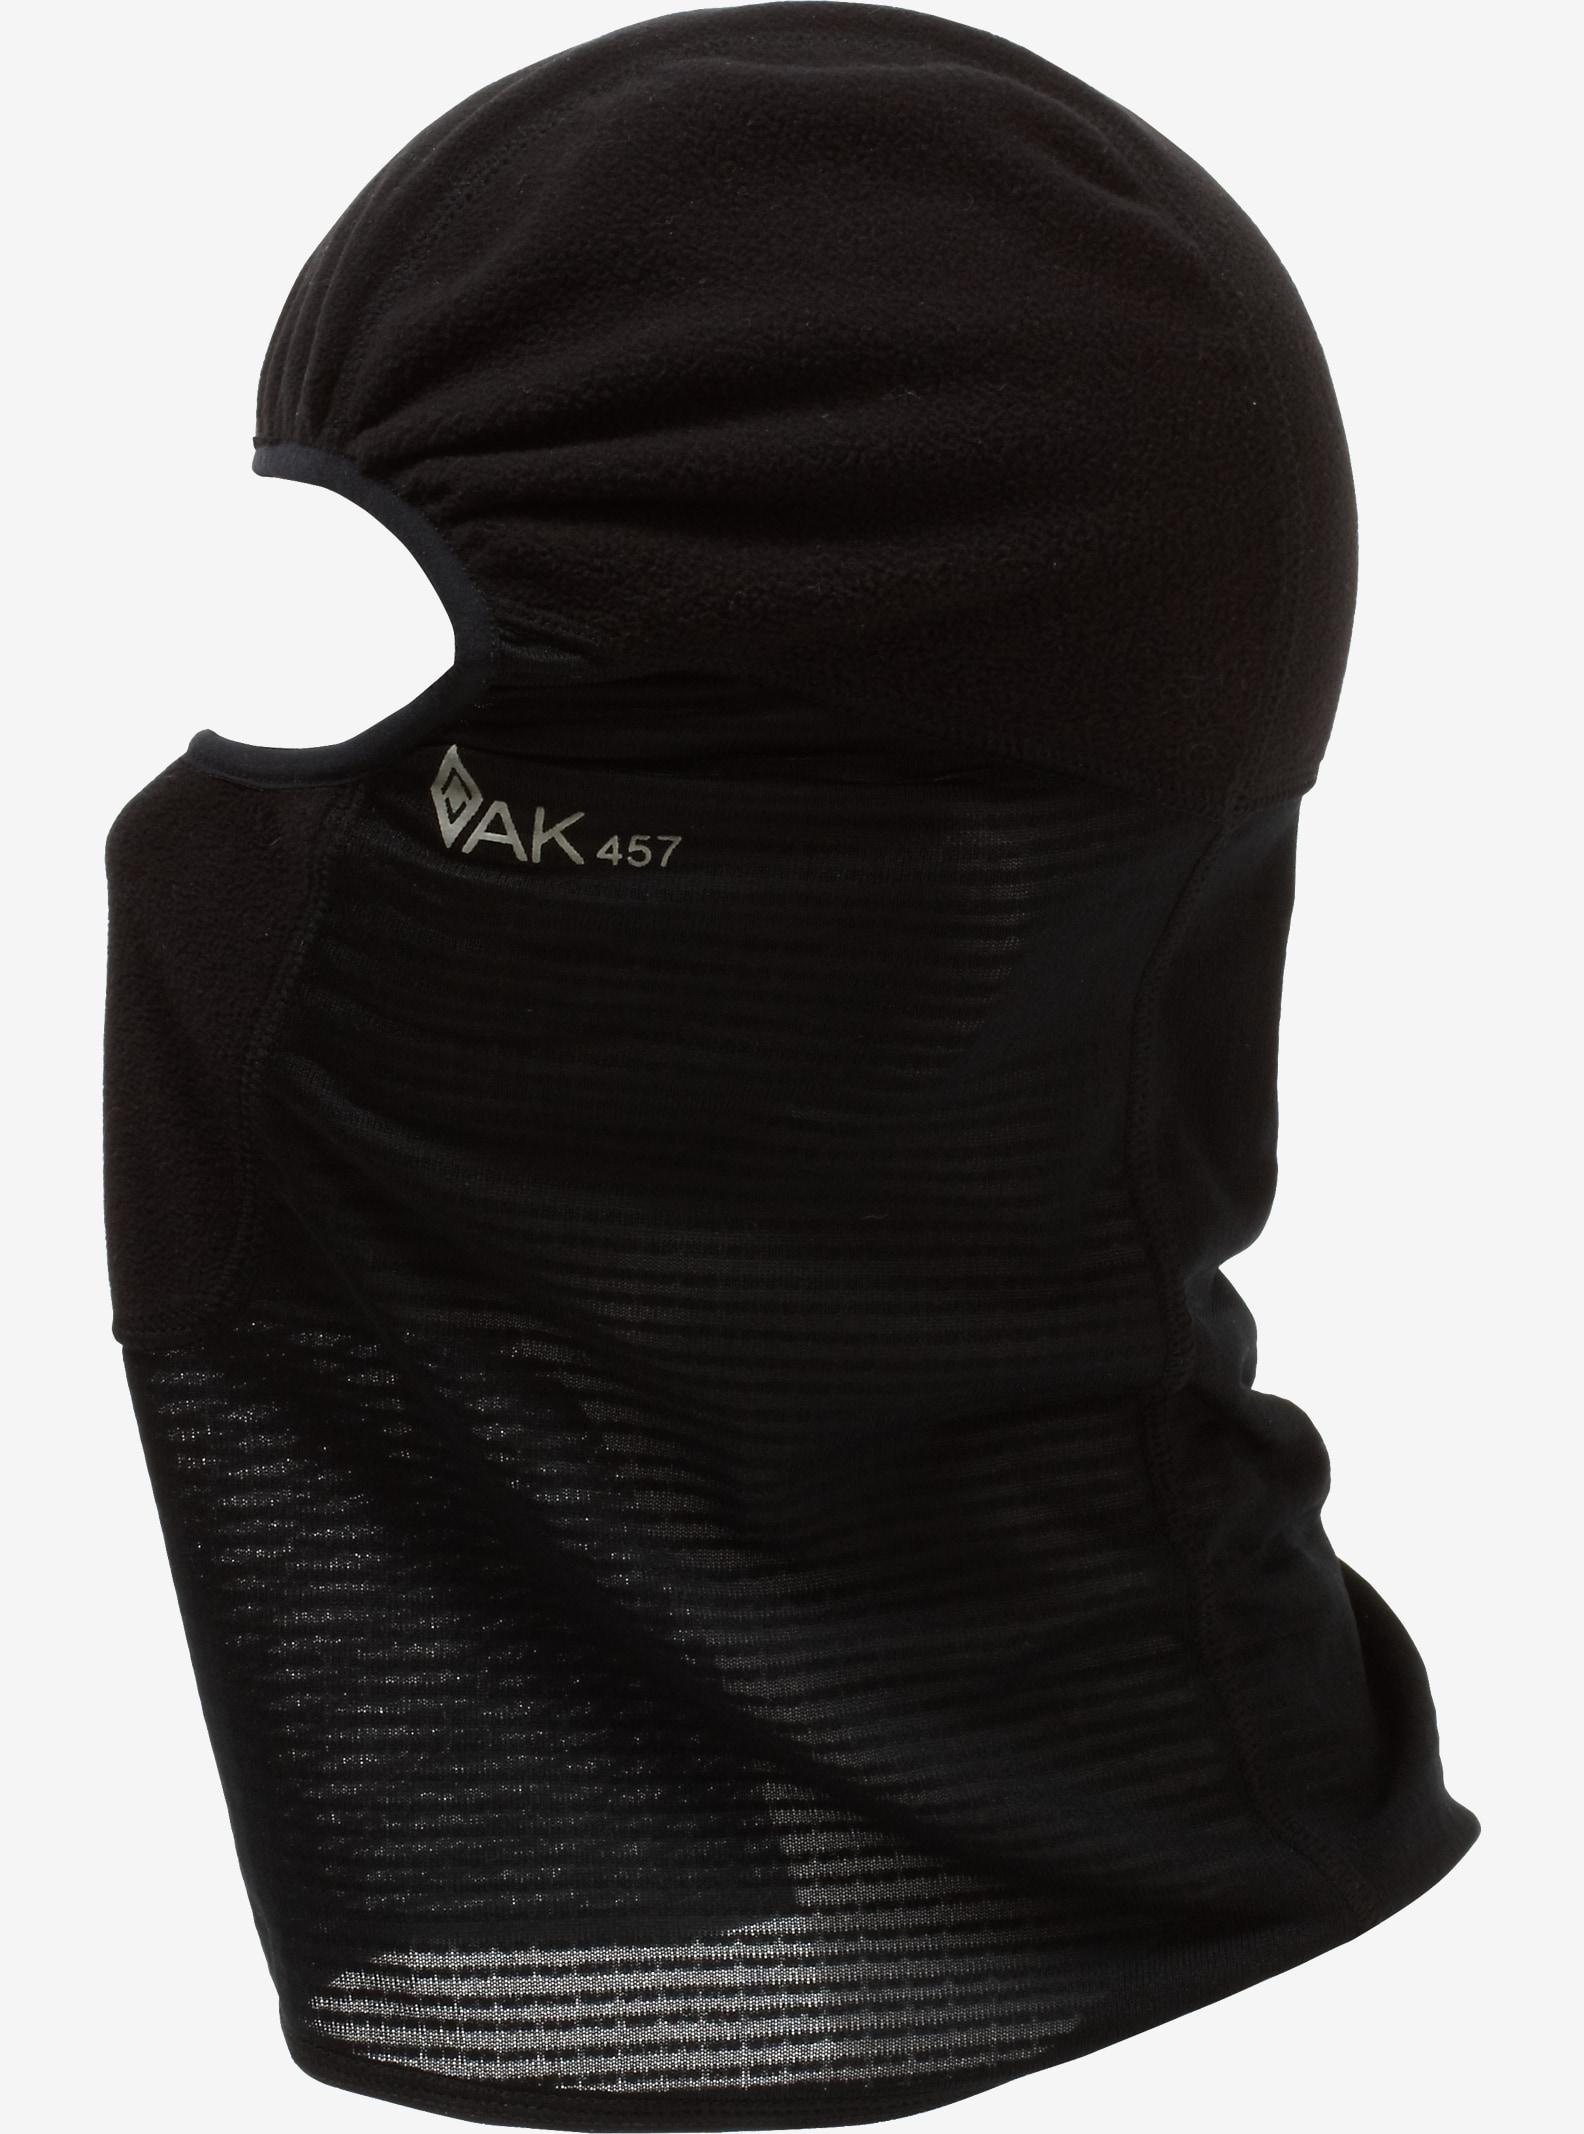 Burton AK457 Balaclava shown in True Black